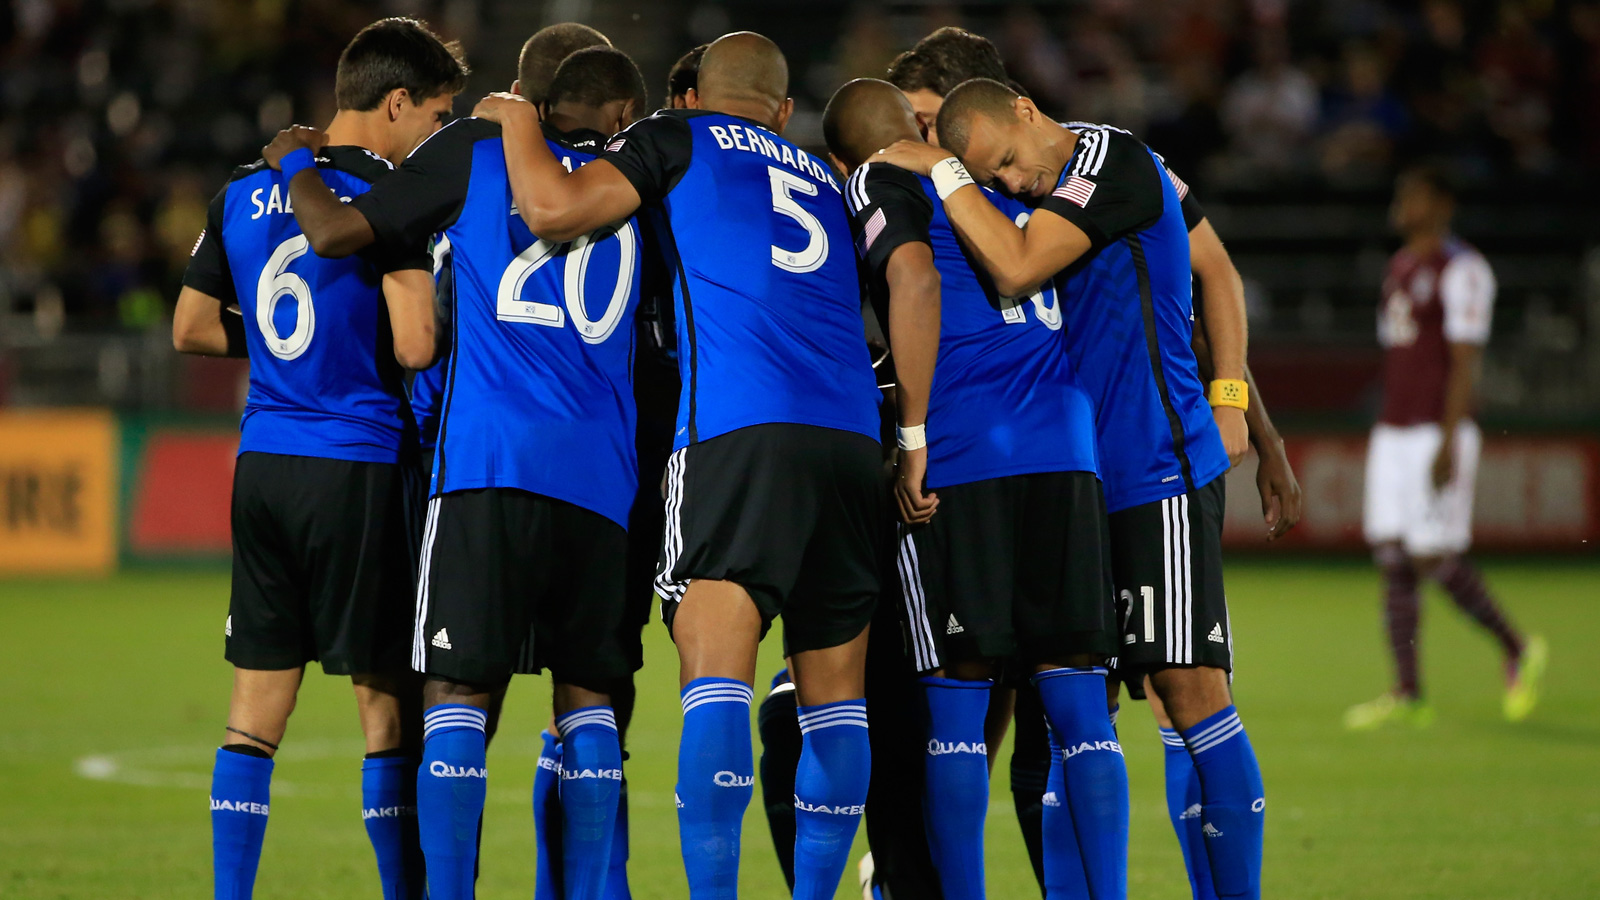 San Jose Earthquakes (USA), 2014